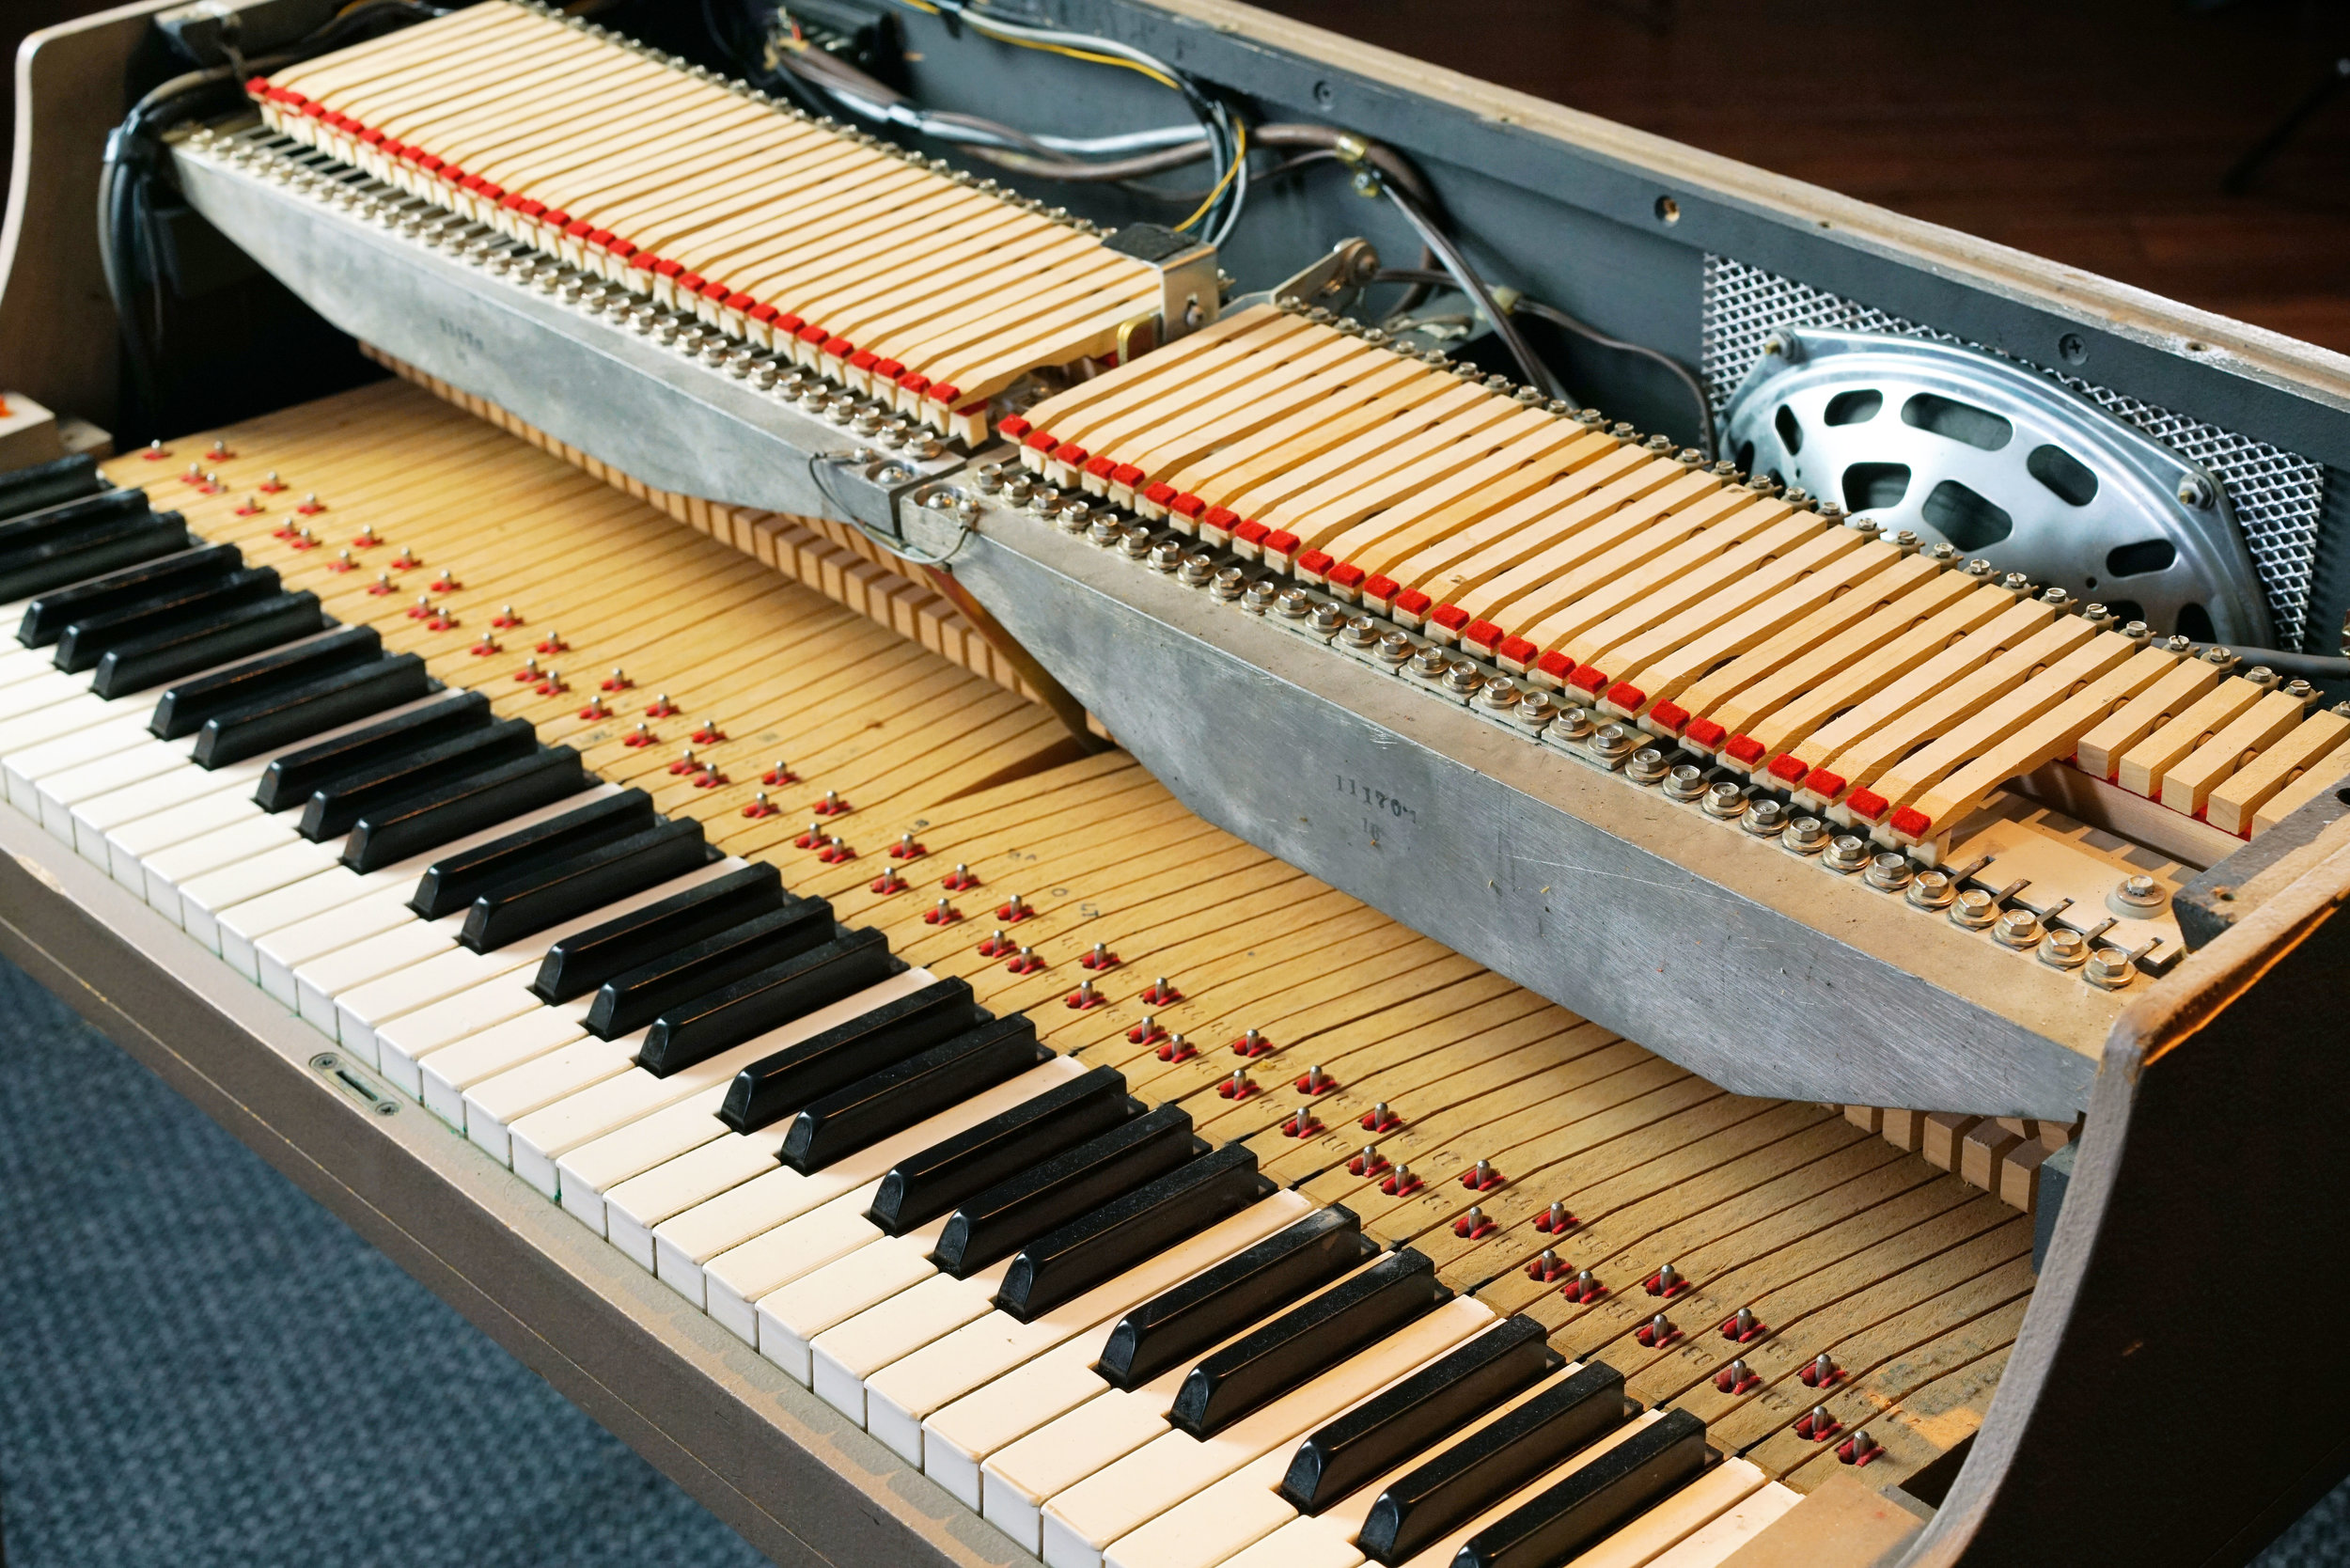 With the lid of this Wurlitzer 140b off, you can clearly see the keyboard's mechanical action. The reeds and the harp are also partially visible in this photo, particularly in the treble section where the dampers are abbreviated. In this model, the amplifier is located at the back (where the wires at the back left lead).